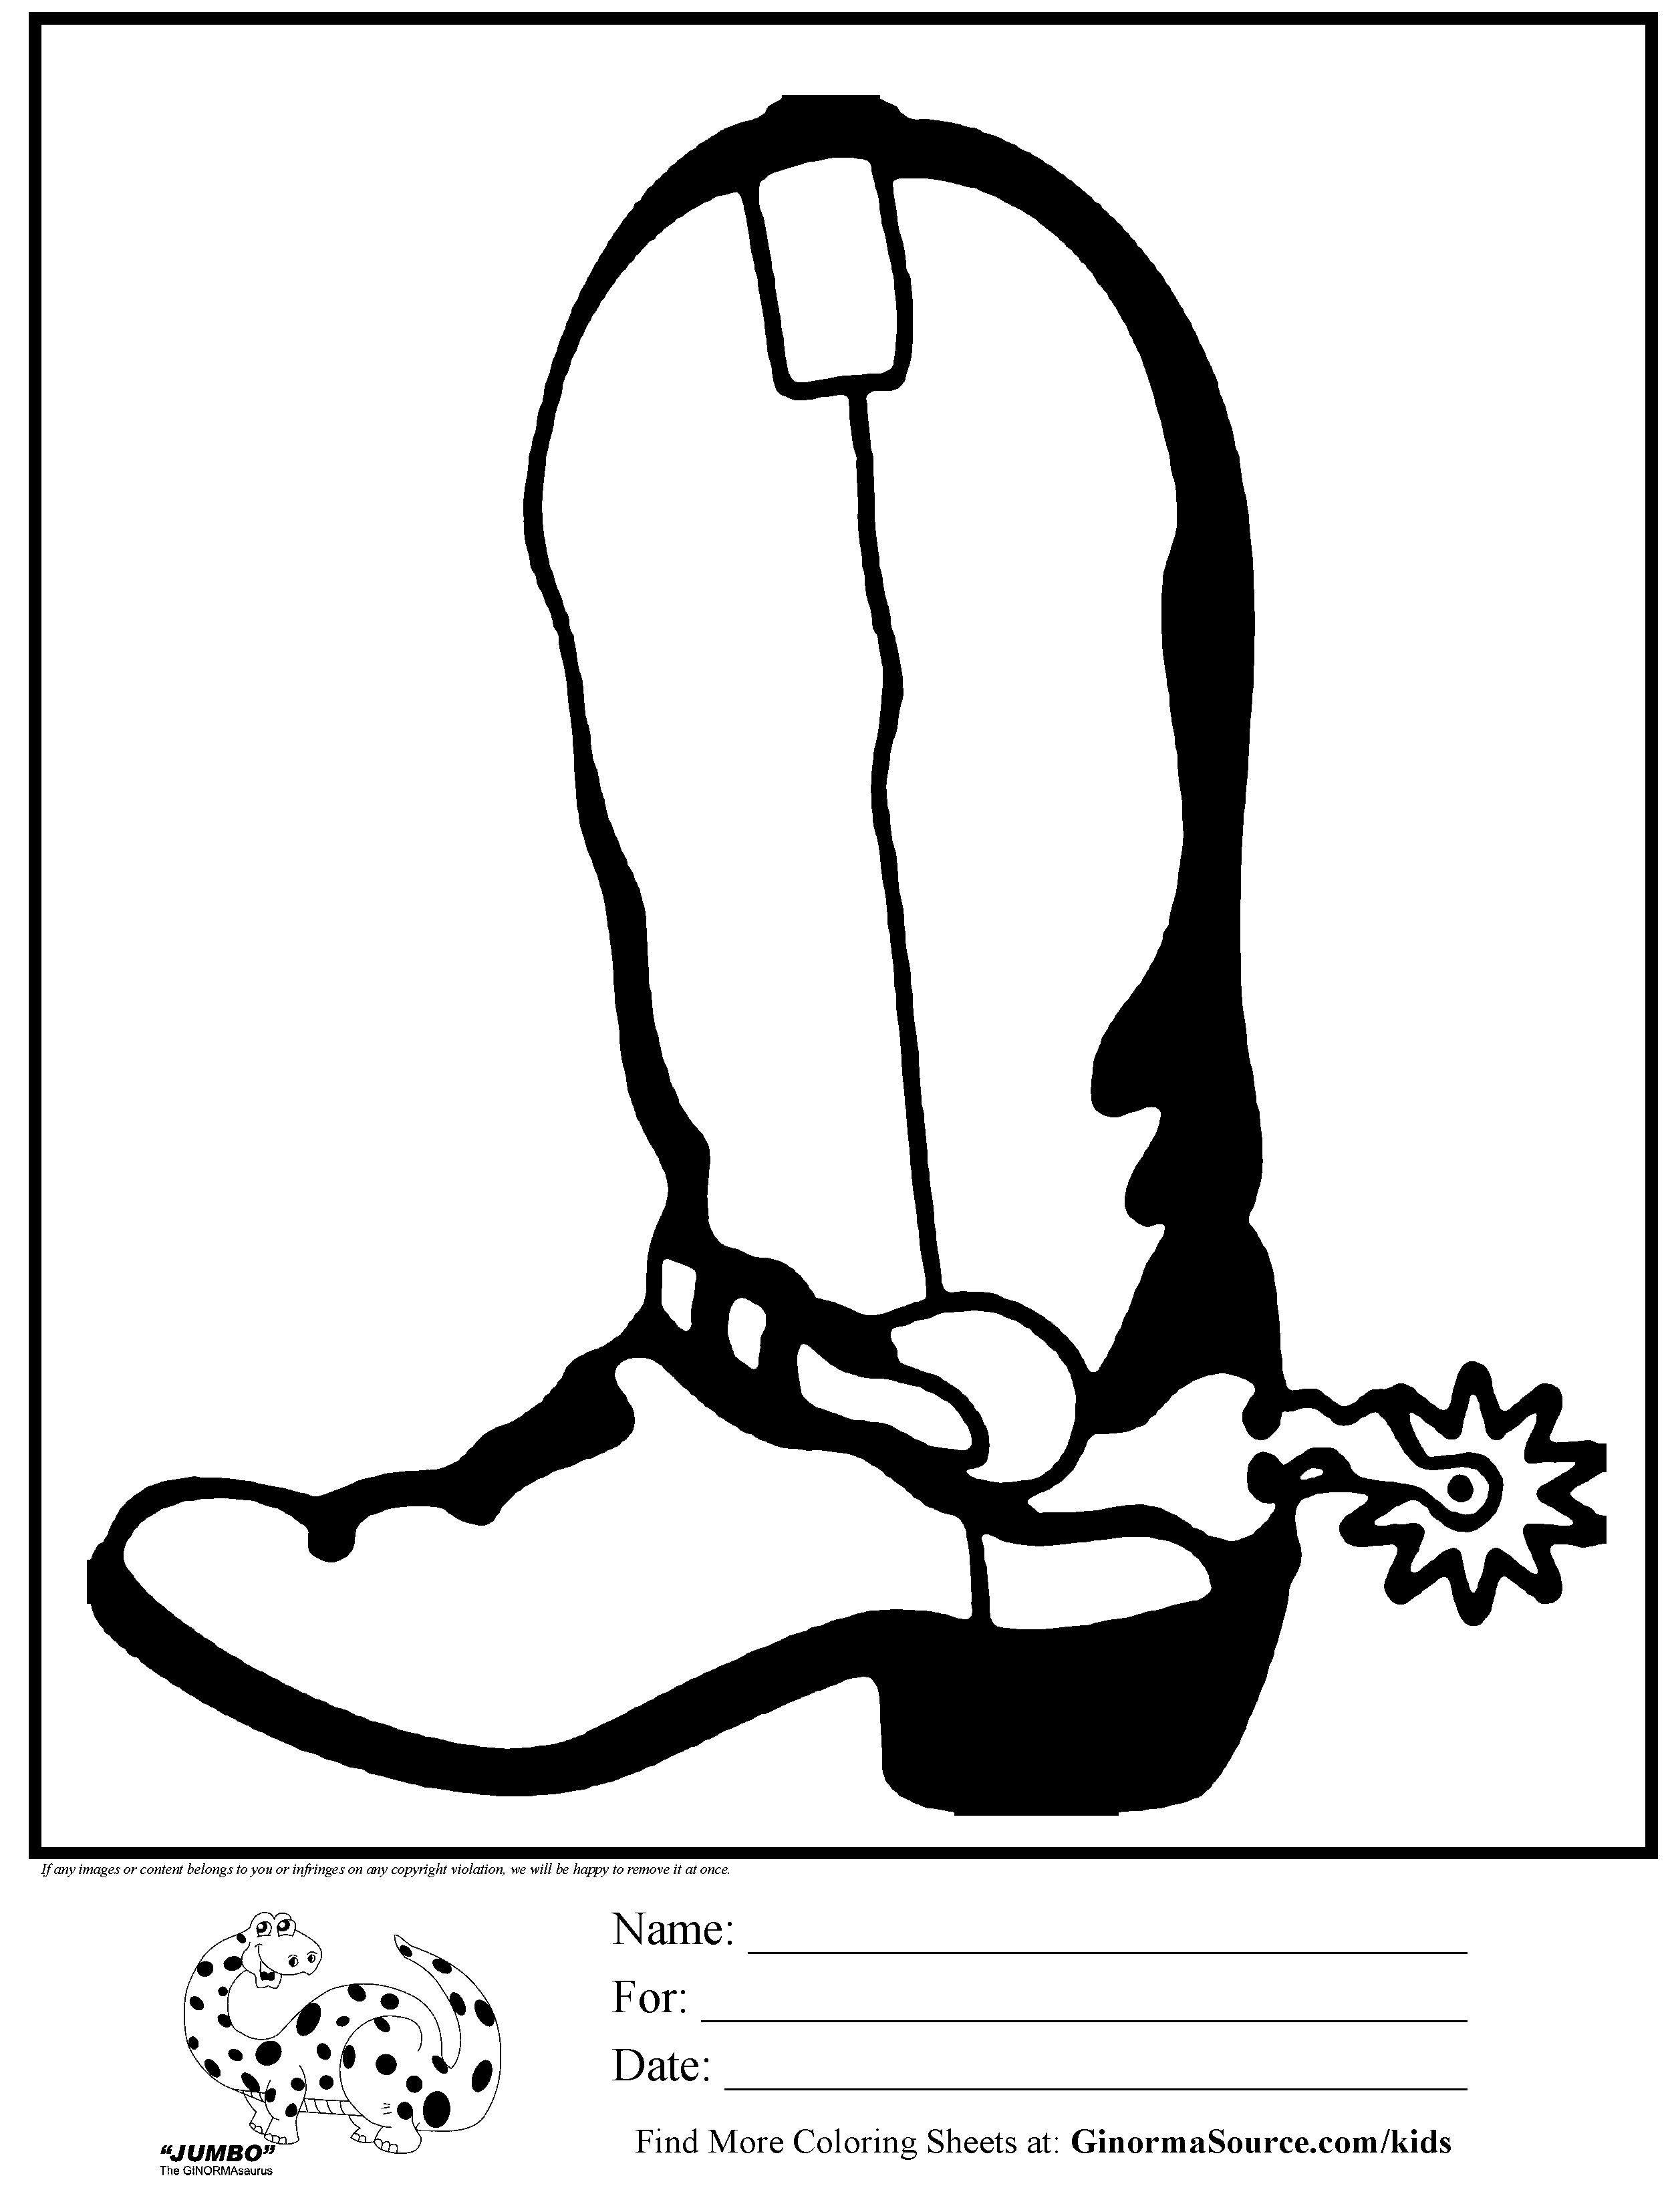 coloring page cowboy boots spurs - GINORMAsource Kids - Cowboy Boots With Spurs PNG